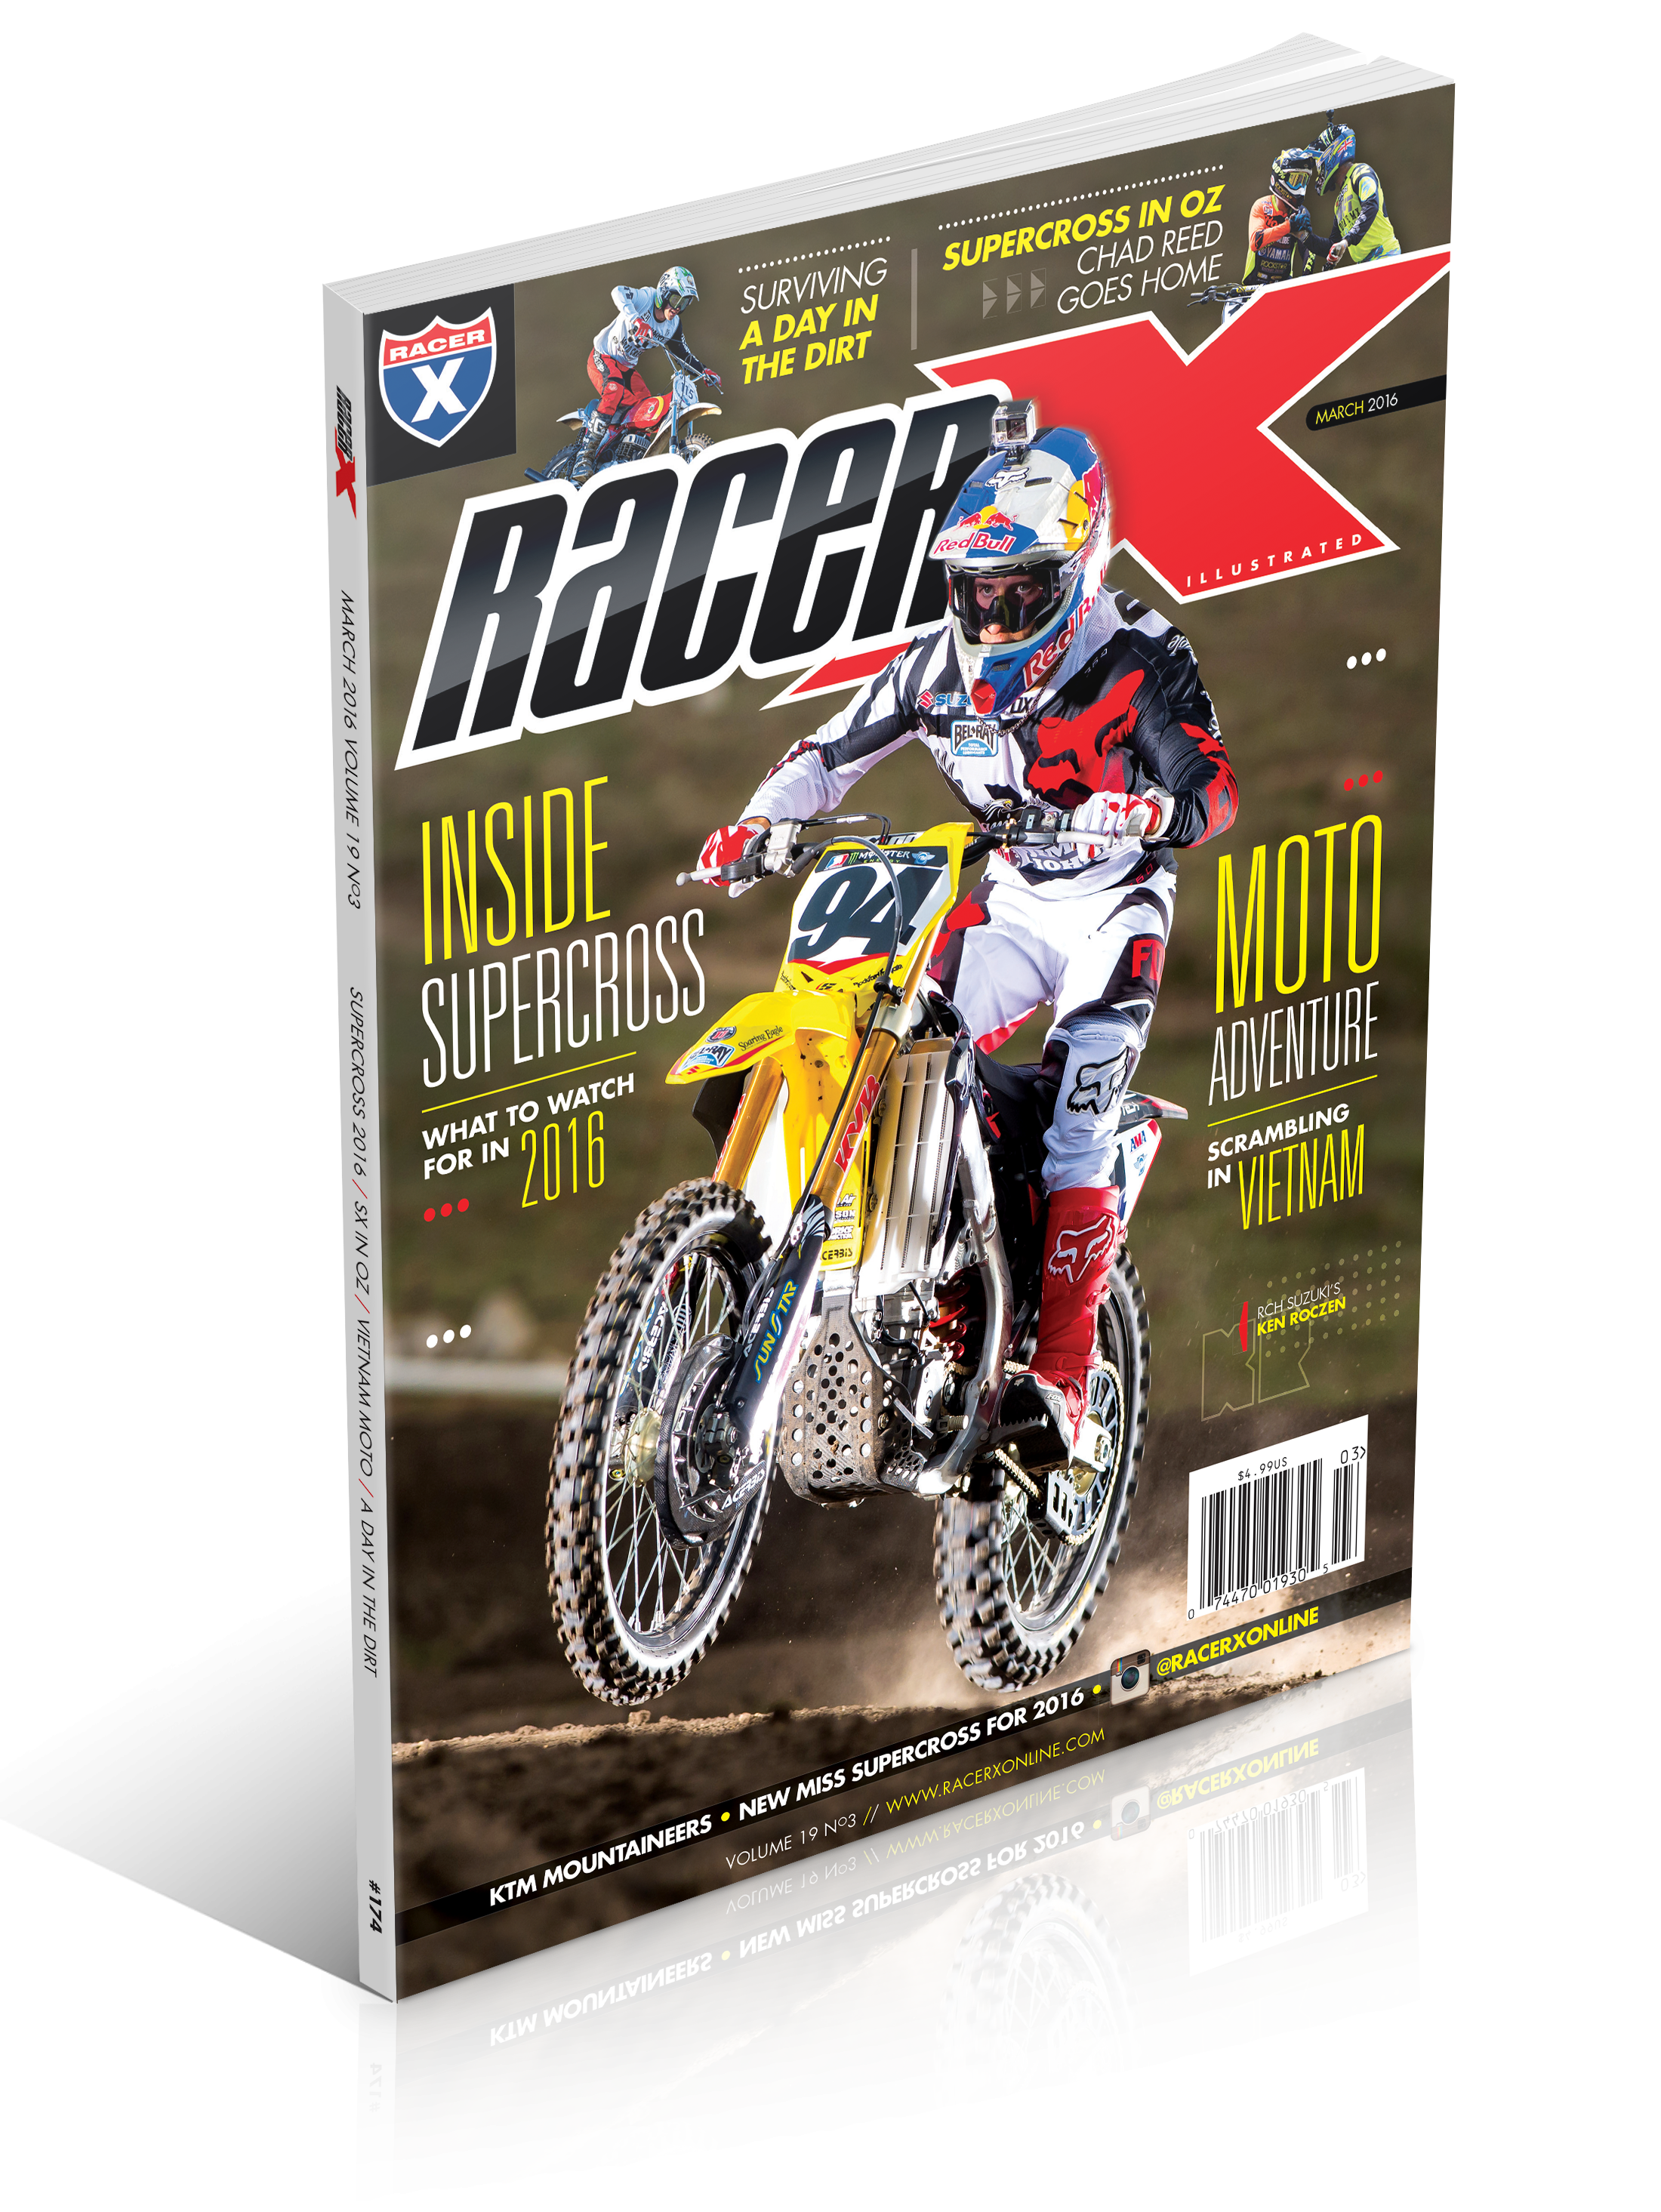 The March 2016 Issue - Racer X Illustrated Supercross Magazine